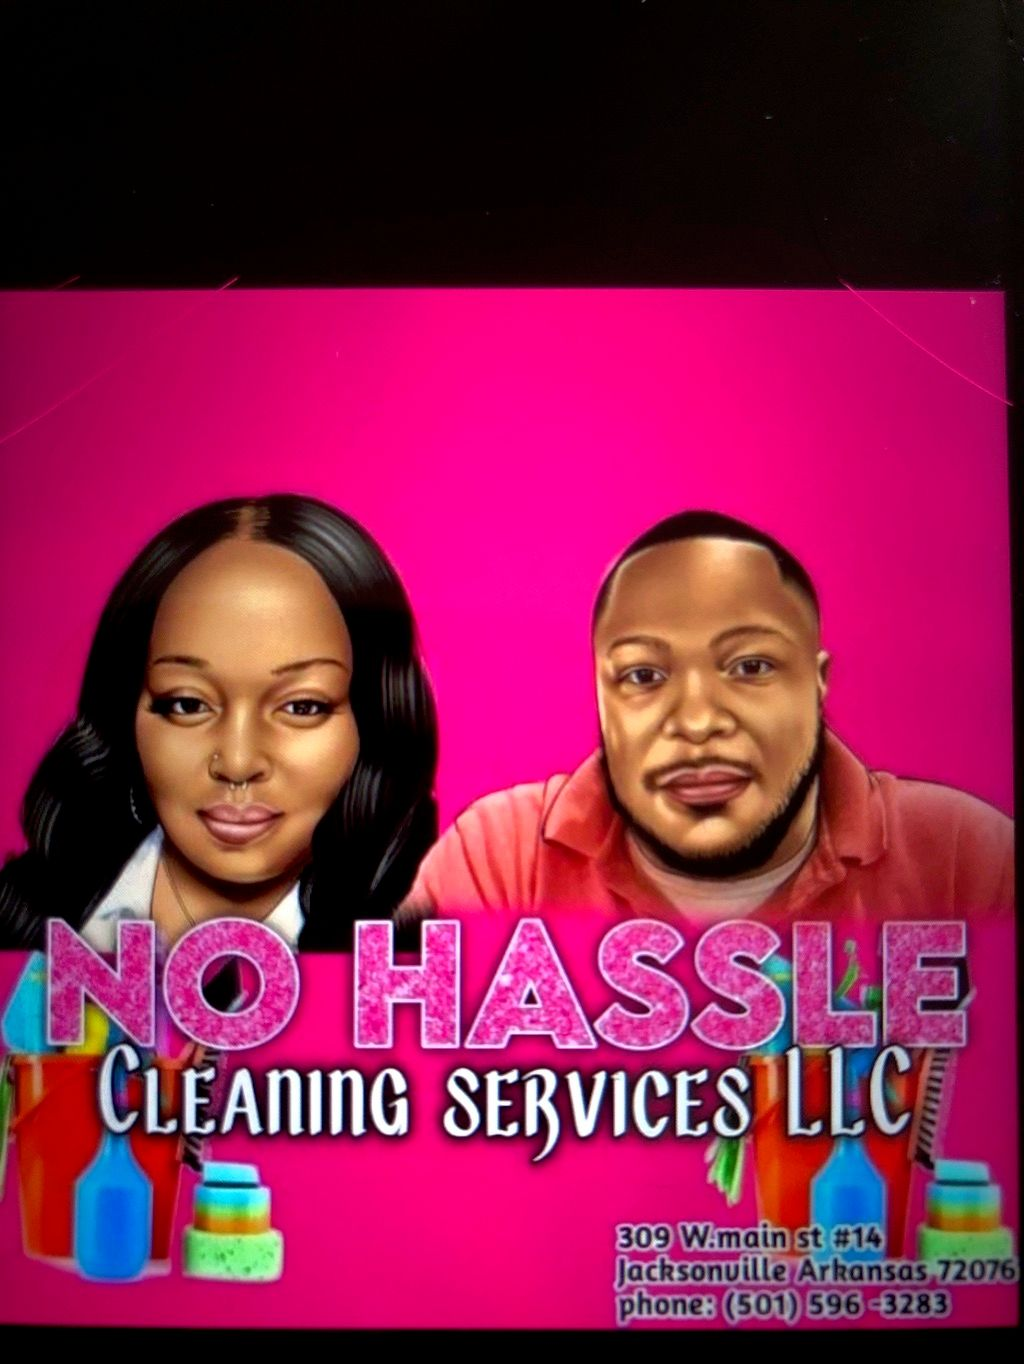 No Hassle Cleaning Service LLC